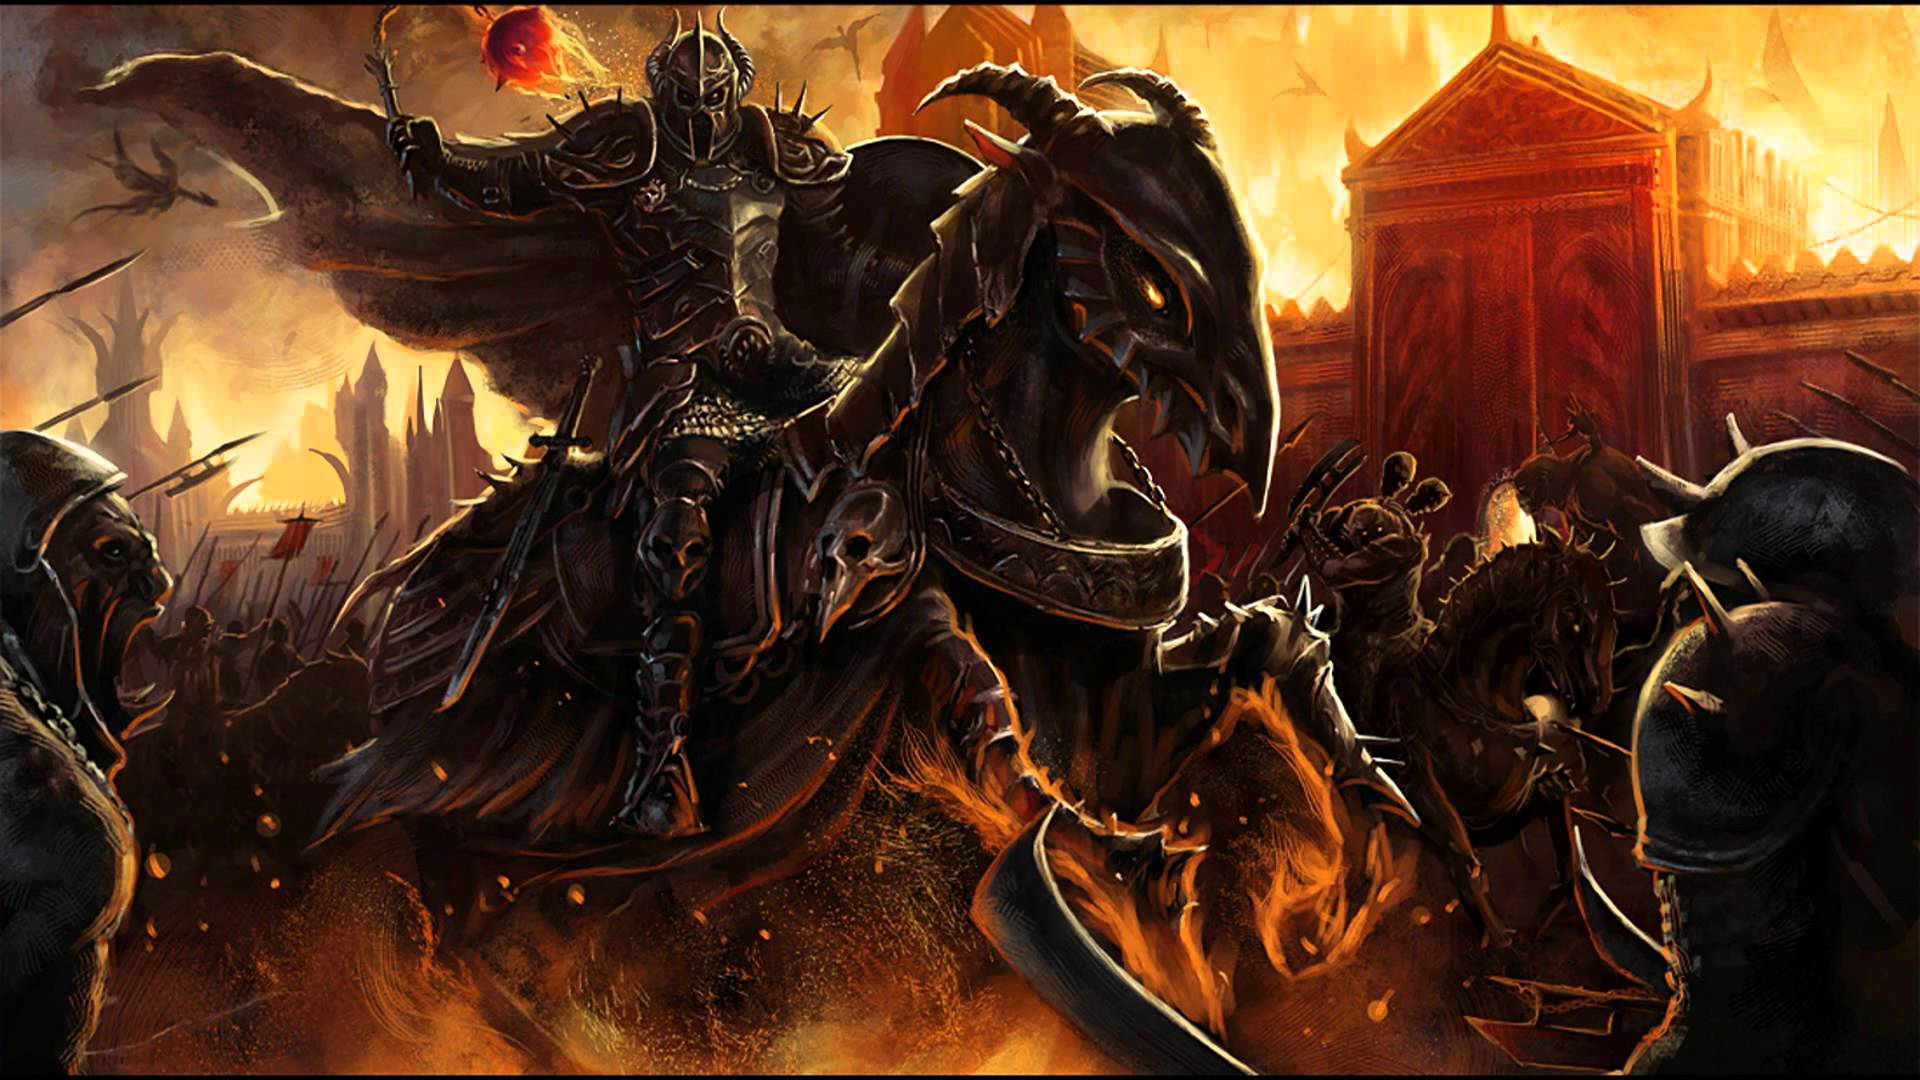 War In Hell Hd Wallpaper Background Image 1920x1080 Id